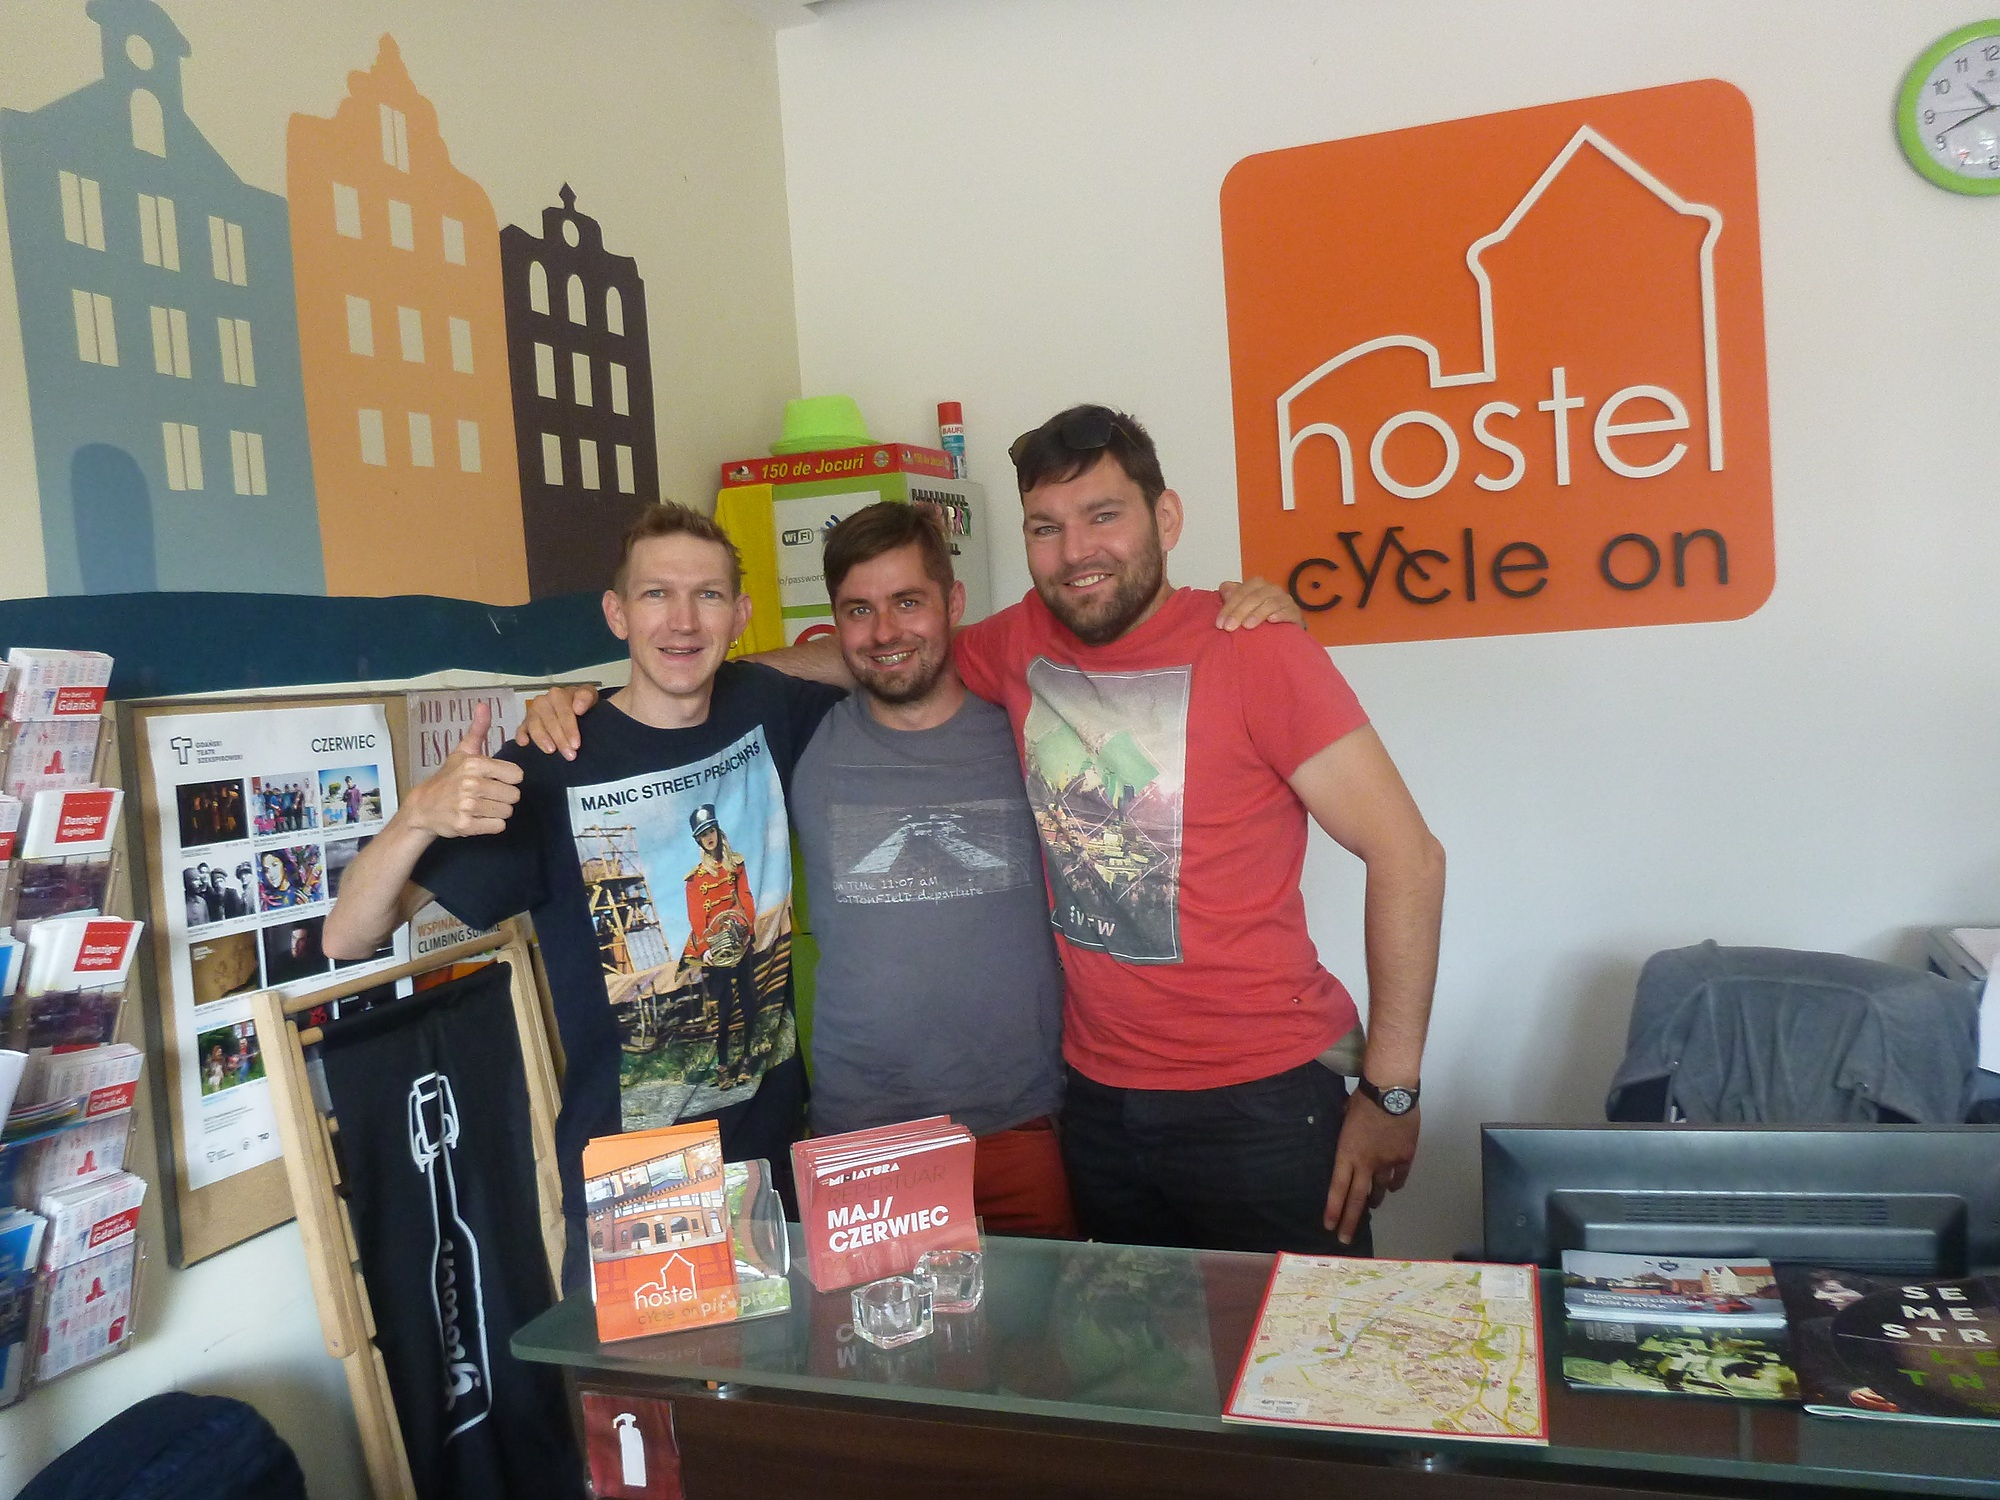 Backpacking in Poland: Staying at Hostel Cycle On in Gdańsk